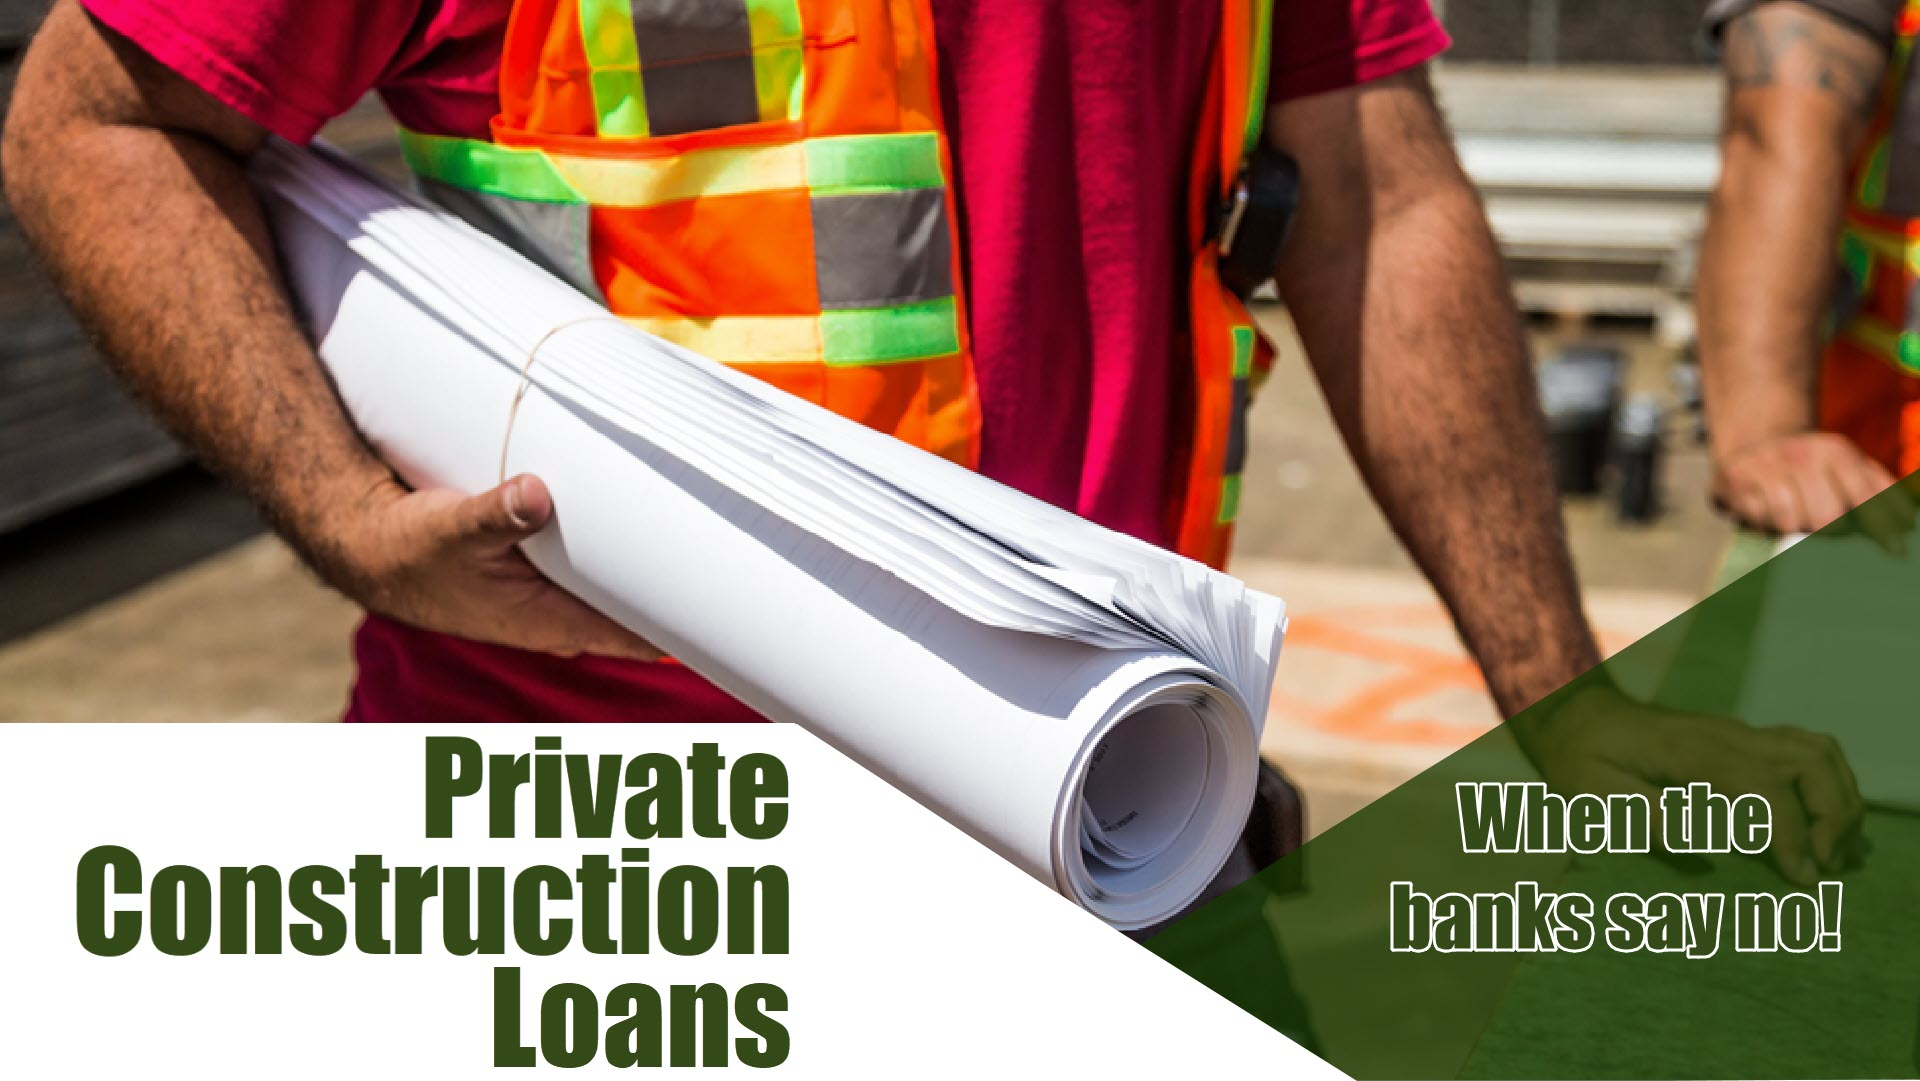 grow your construction business image